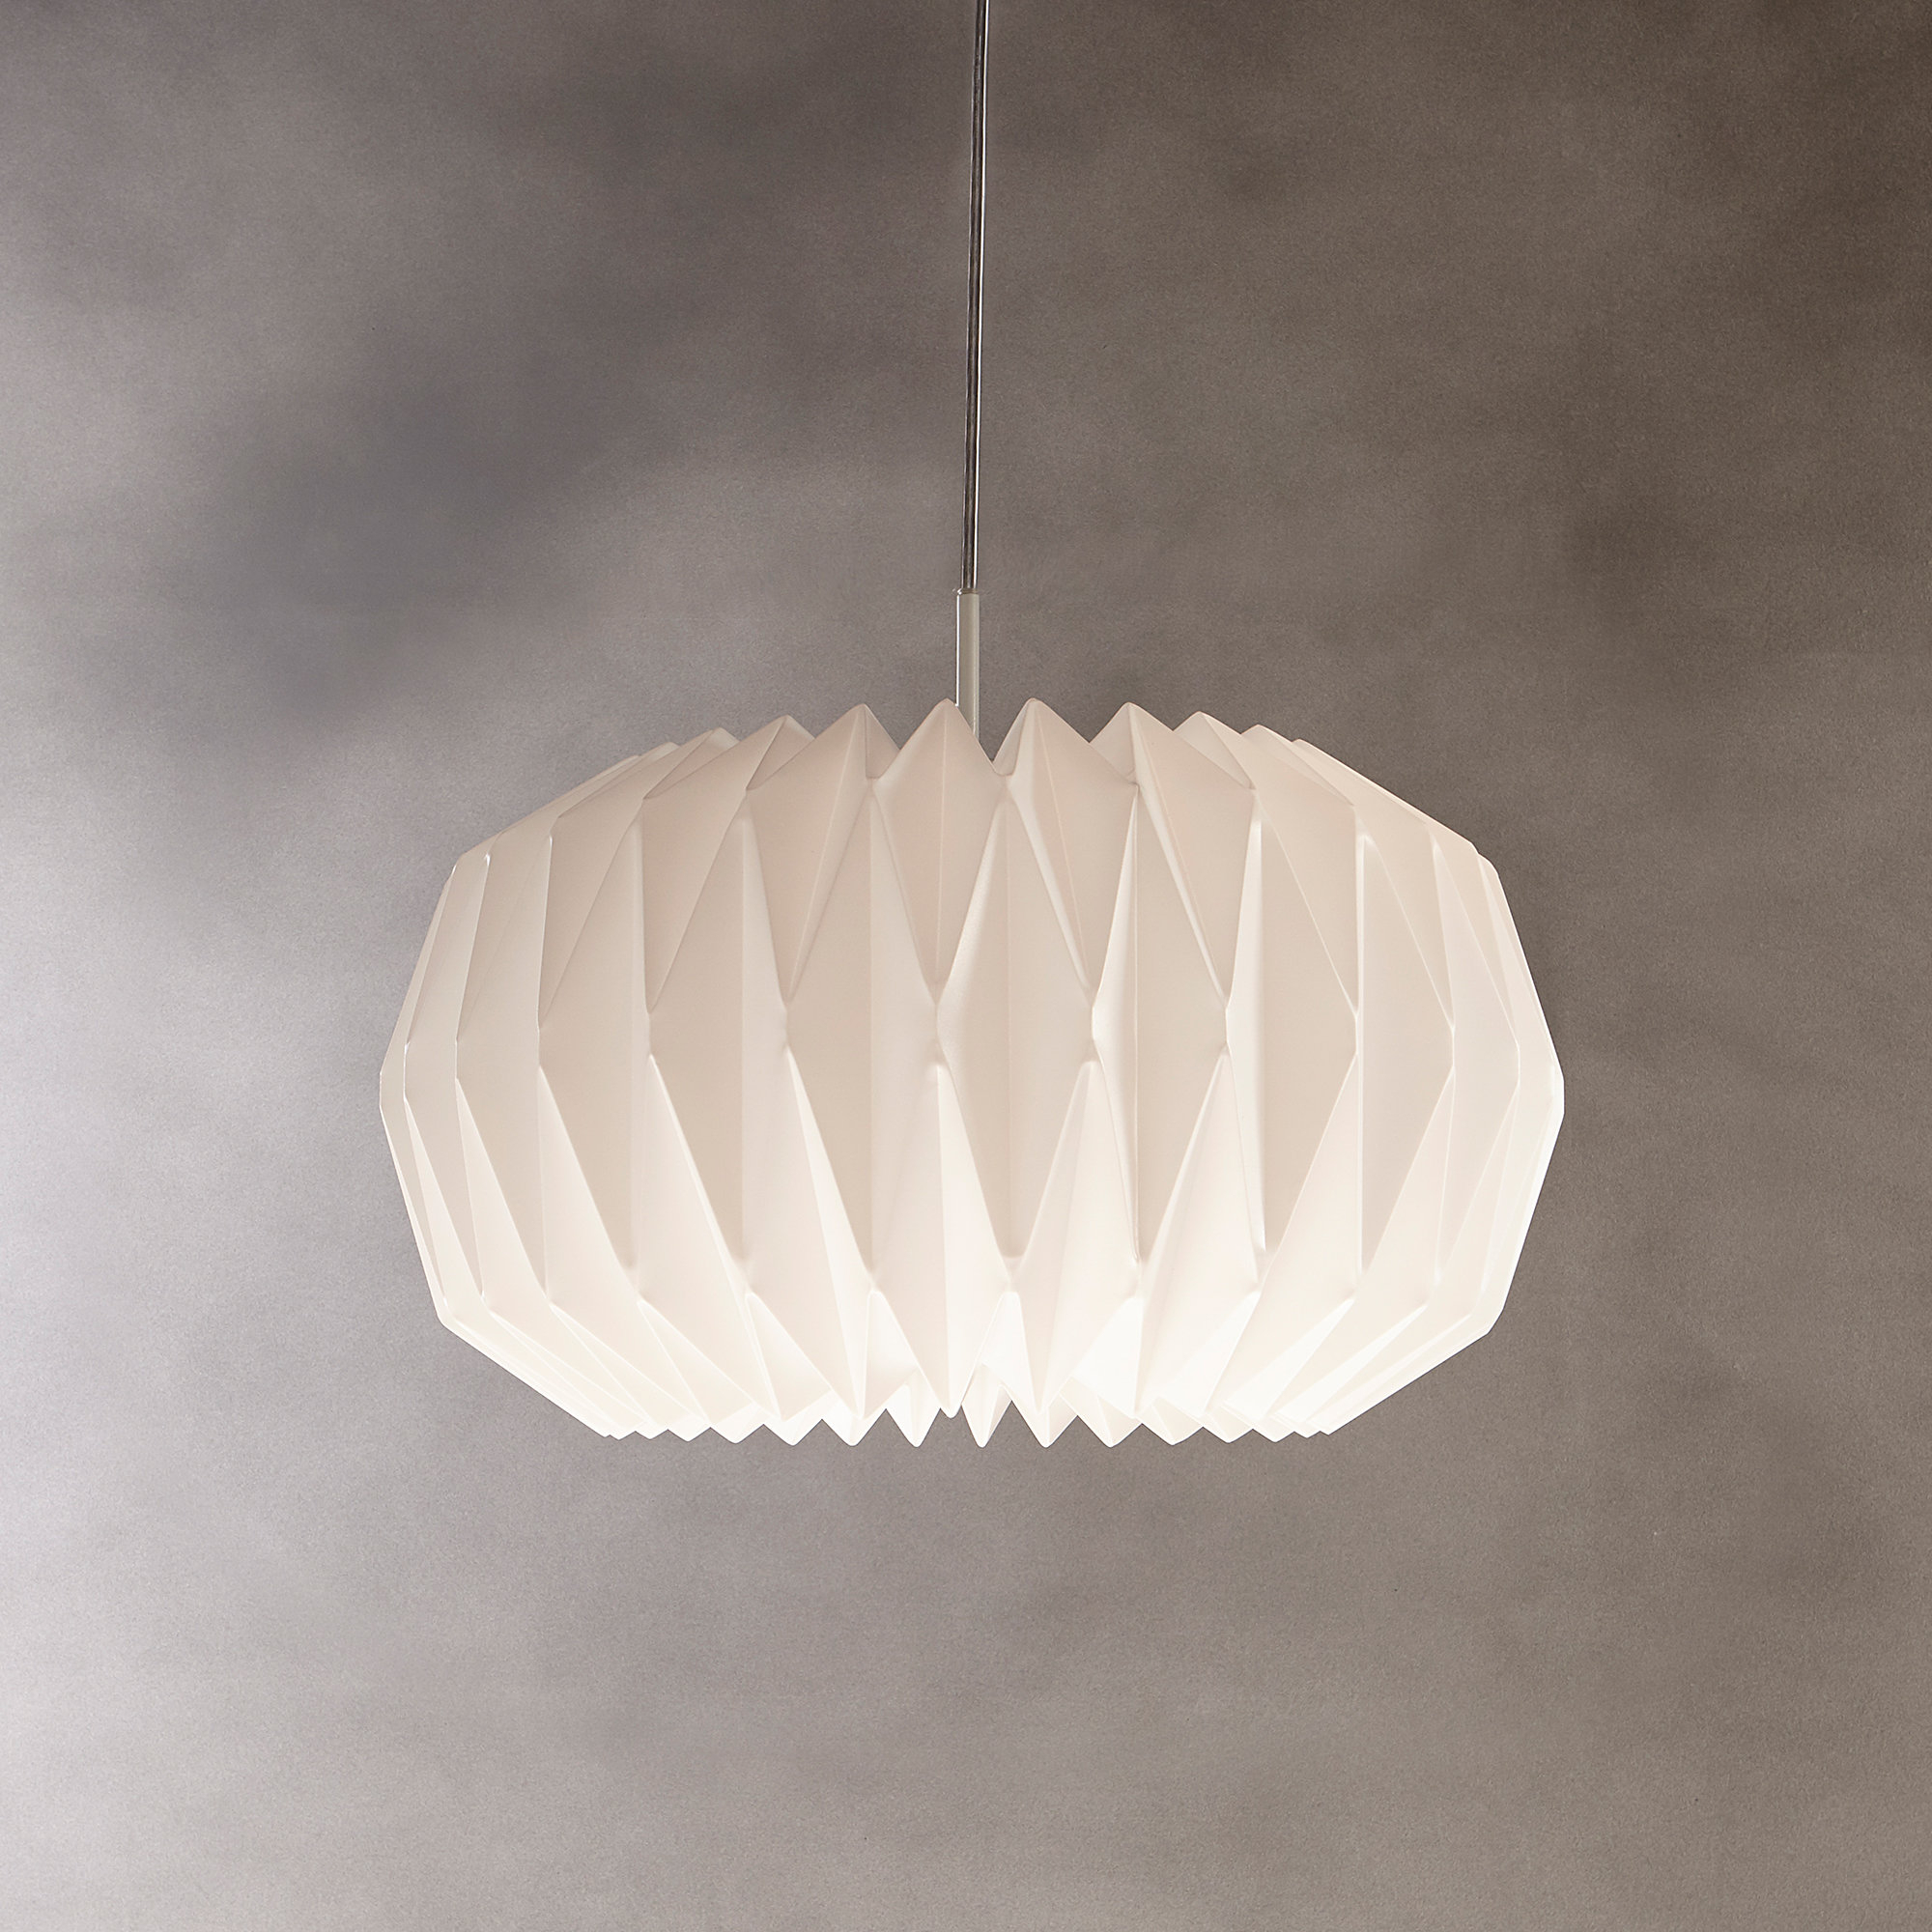 Gary Drum Pendant Throughout Latest Melora 1 Light Single Geometric Pendants (Gallery 14 of 20)